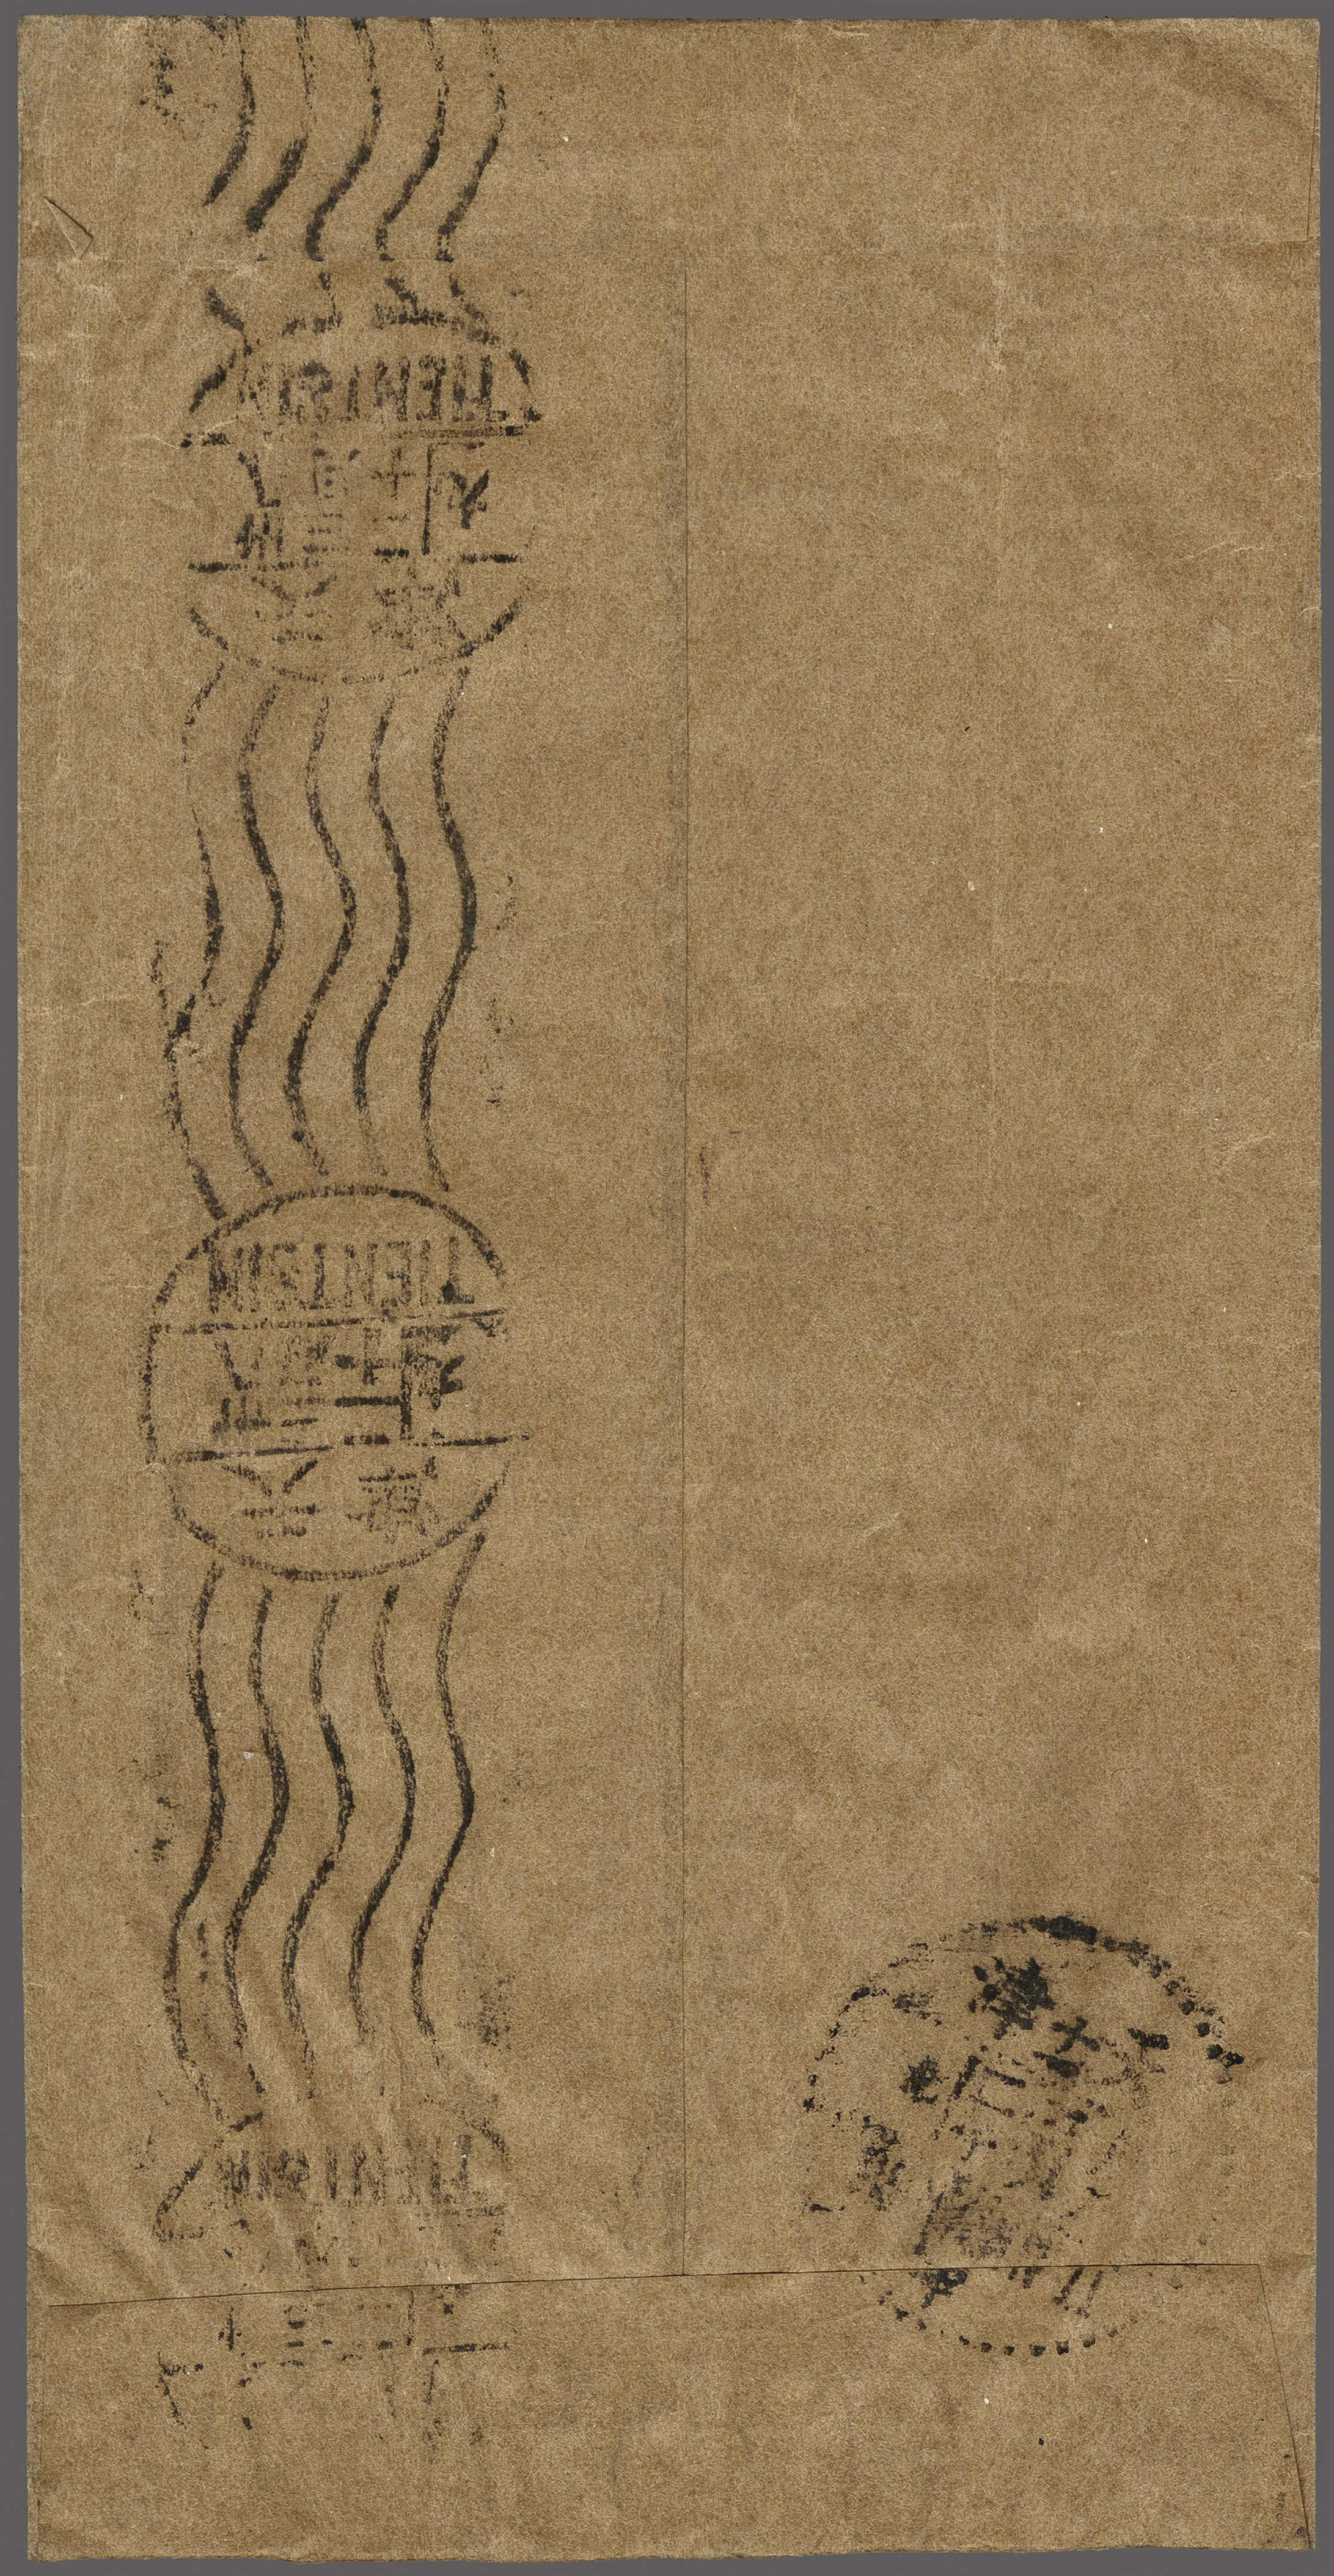 Lot 67 - China China Northern Provinces -  Corinphila Veilingen Auction 250-253 - Day 1 - Foreign countries